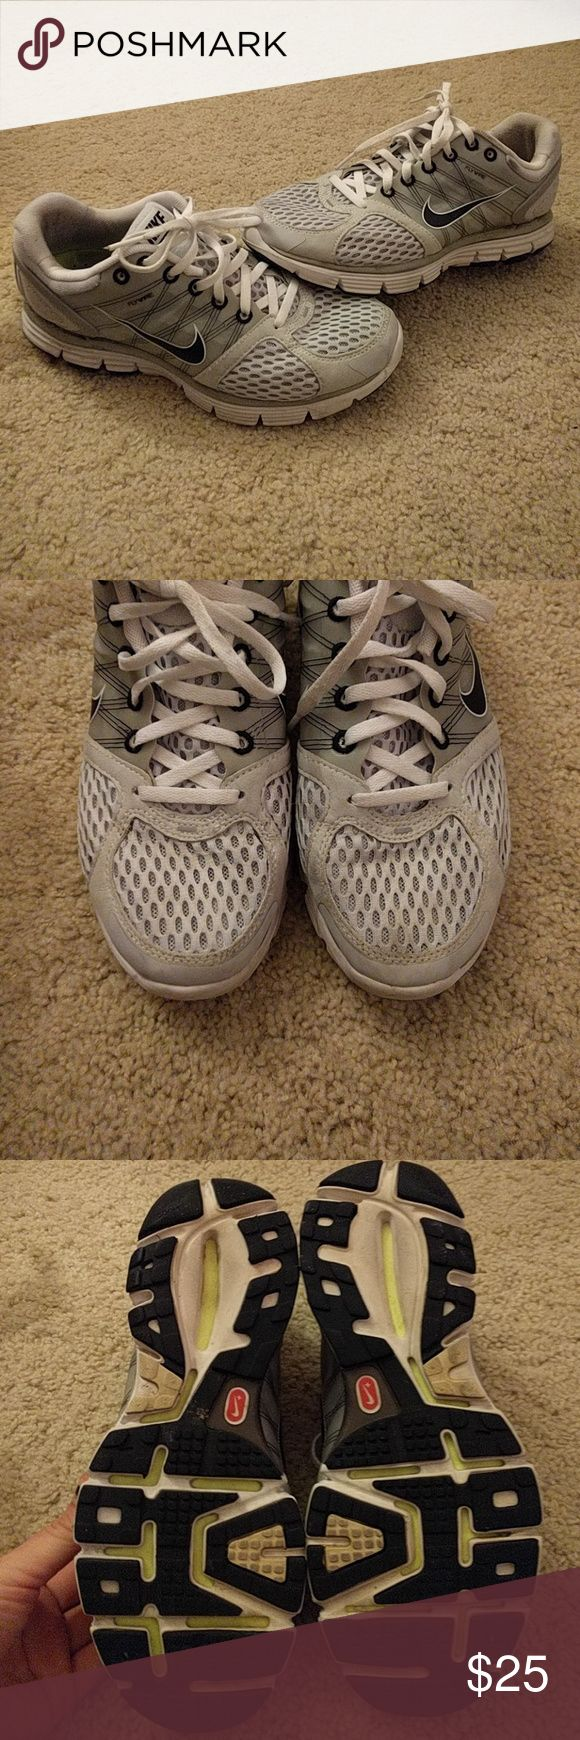 Nike Lunarglide 2 shoes Great condition for white shoes - some dirt stains ( shown above) as well as some scuff marks around the heel areas - never have washed these so both stain and scuffs may come out Nike Shoes Athletic Shoes